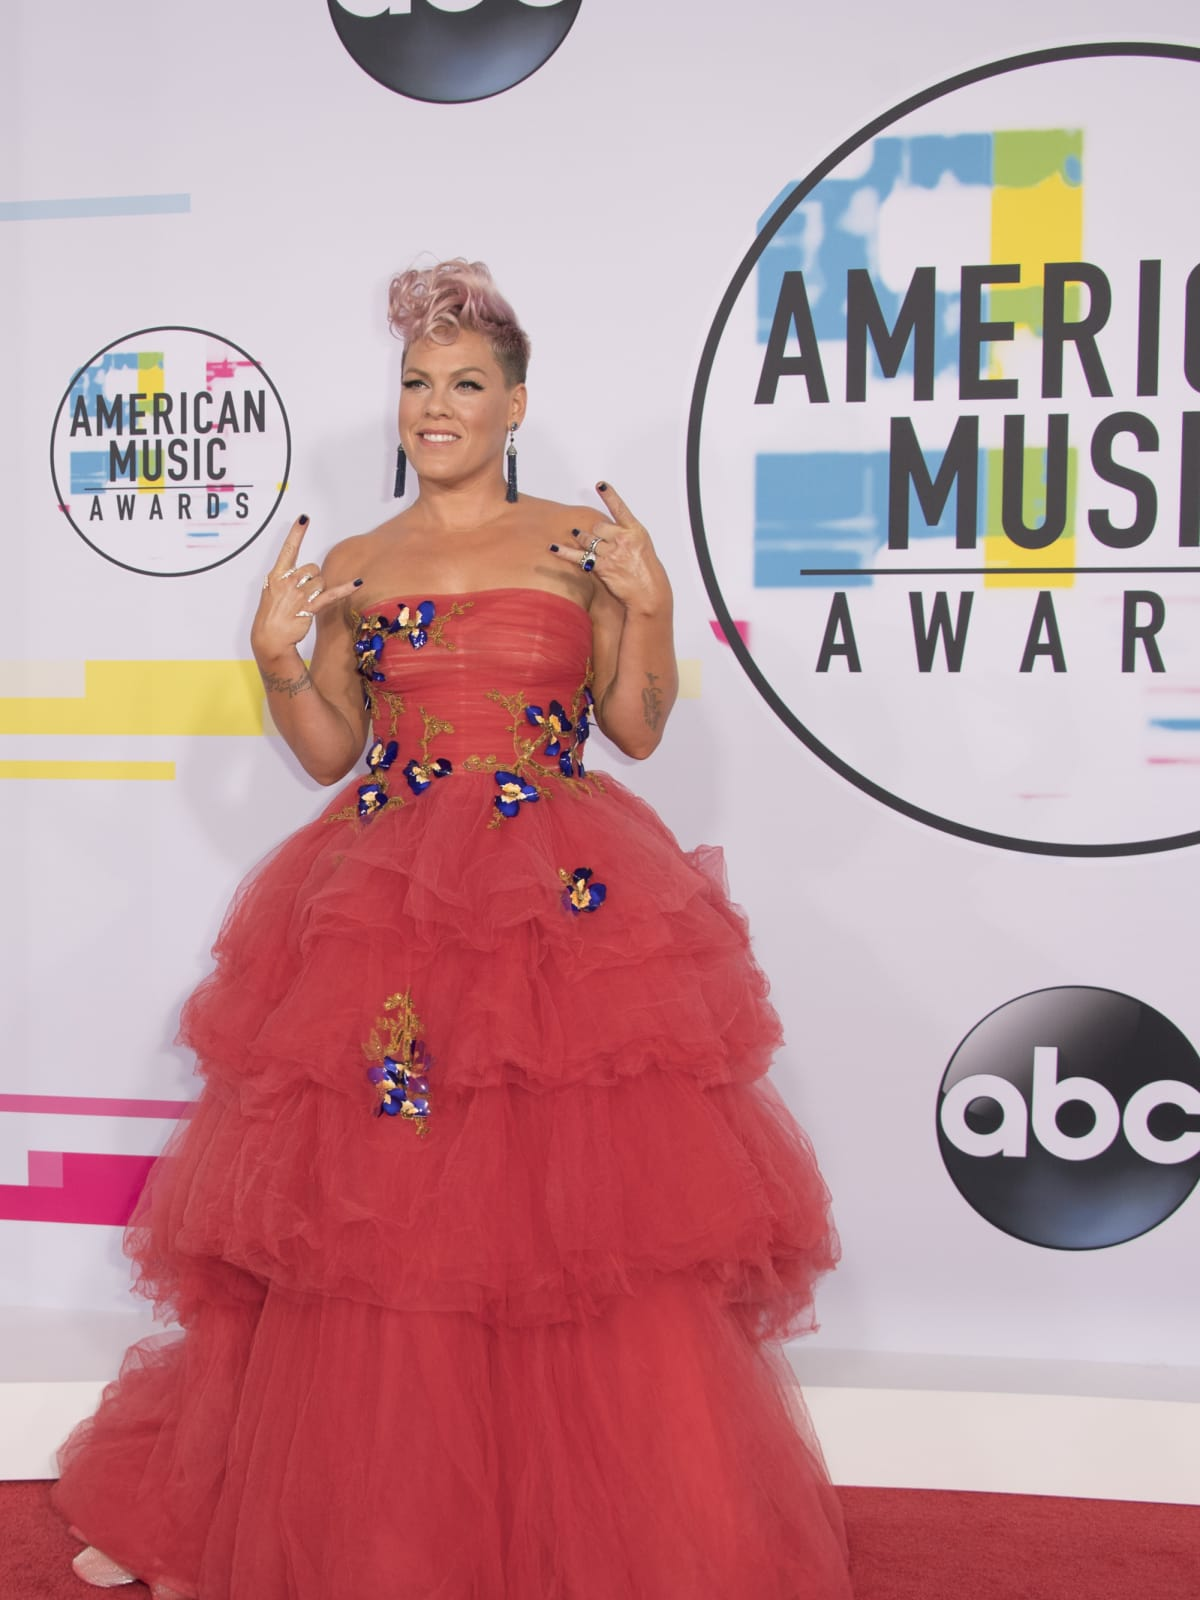 American Music Awards Pink